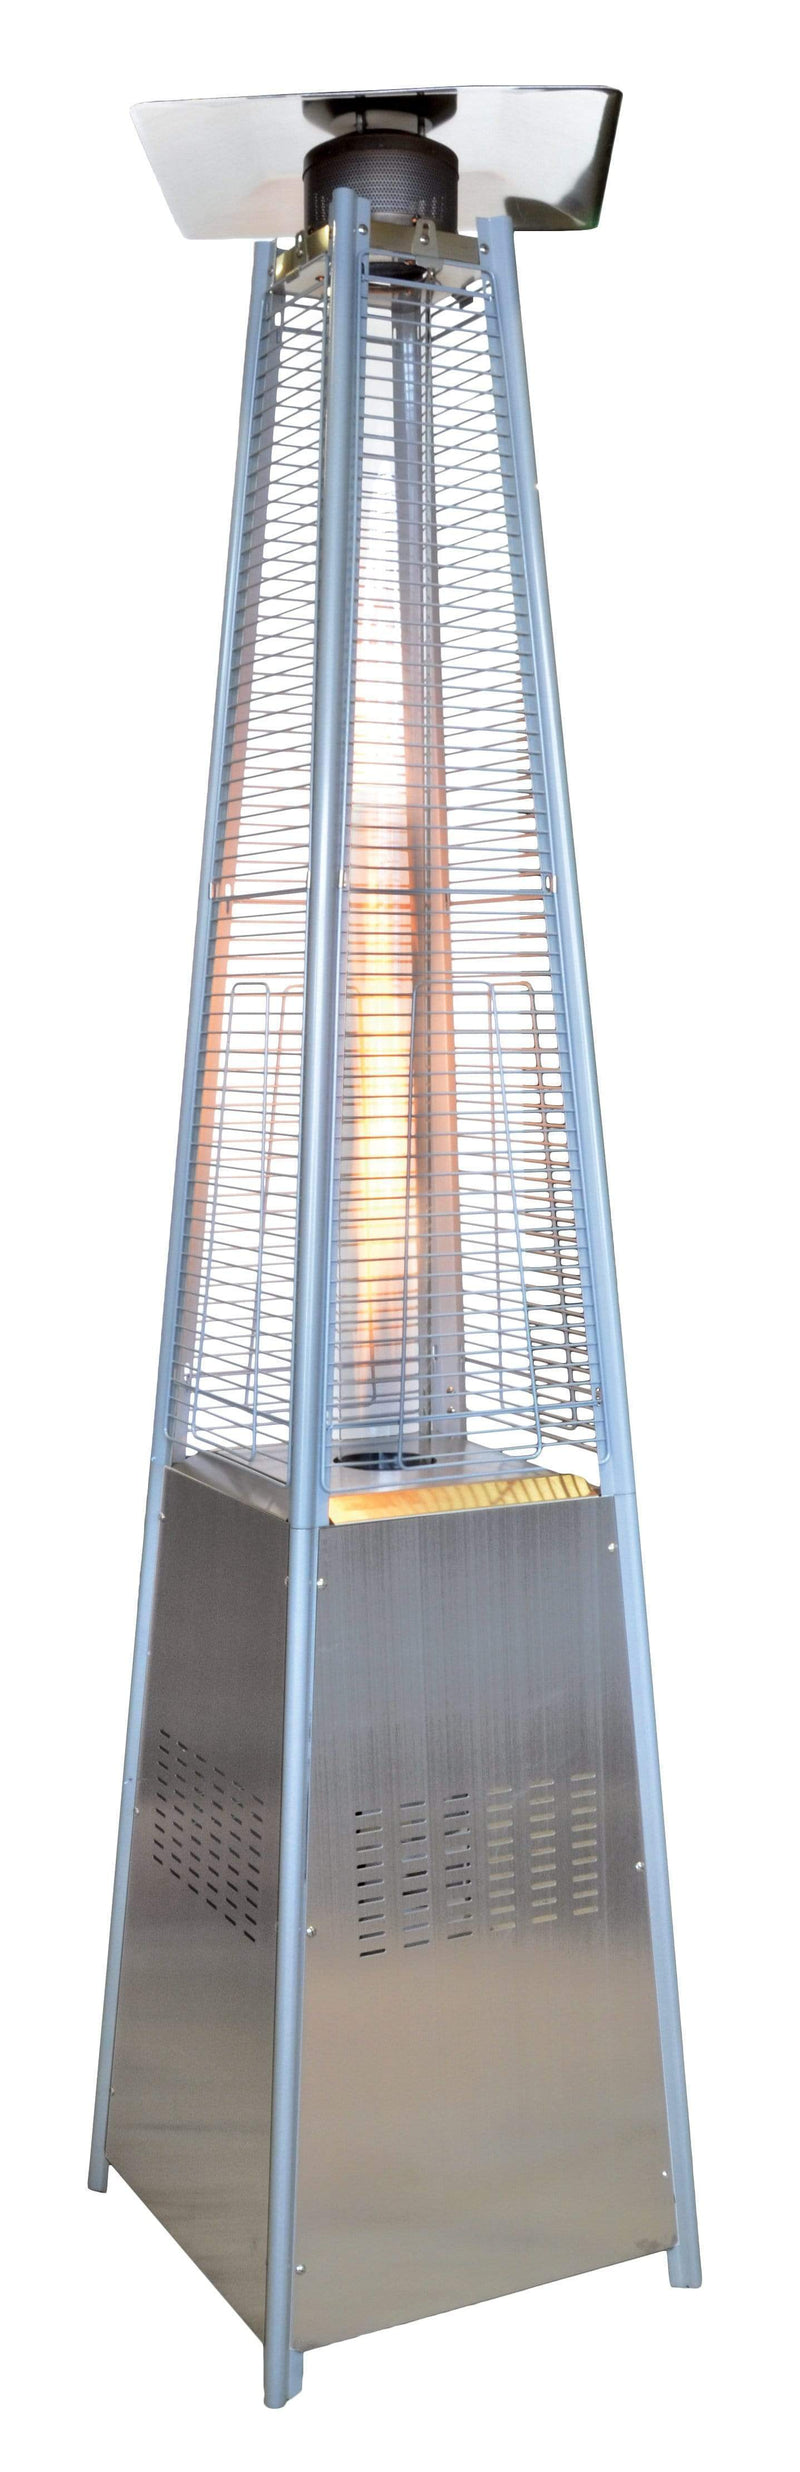 Omcan PH-CN-0042 - Propane, Quartz Tube Commercial Patio Heater